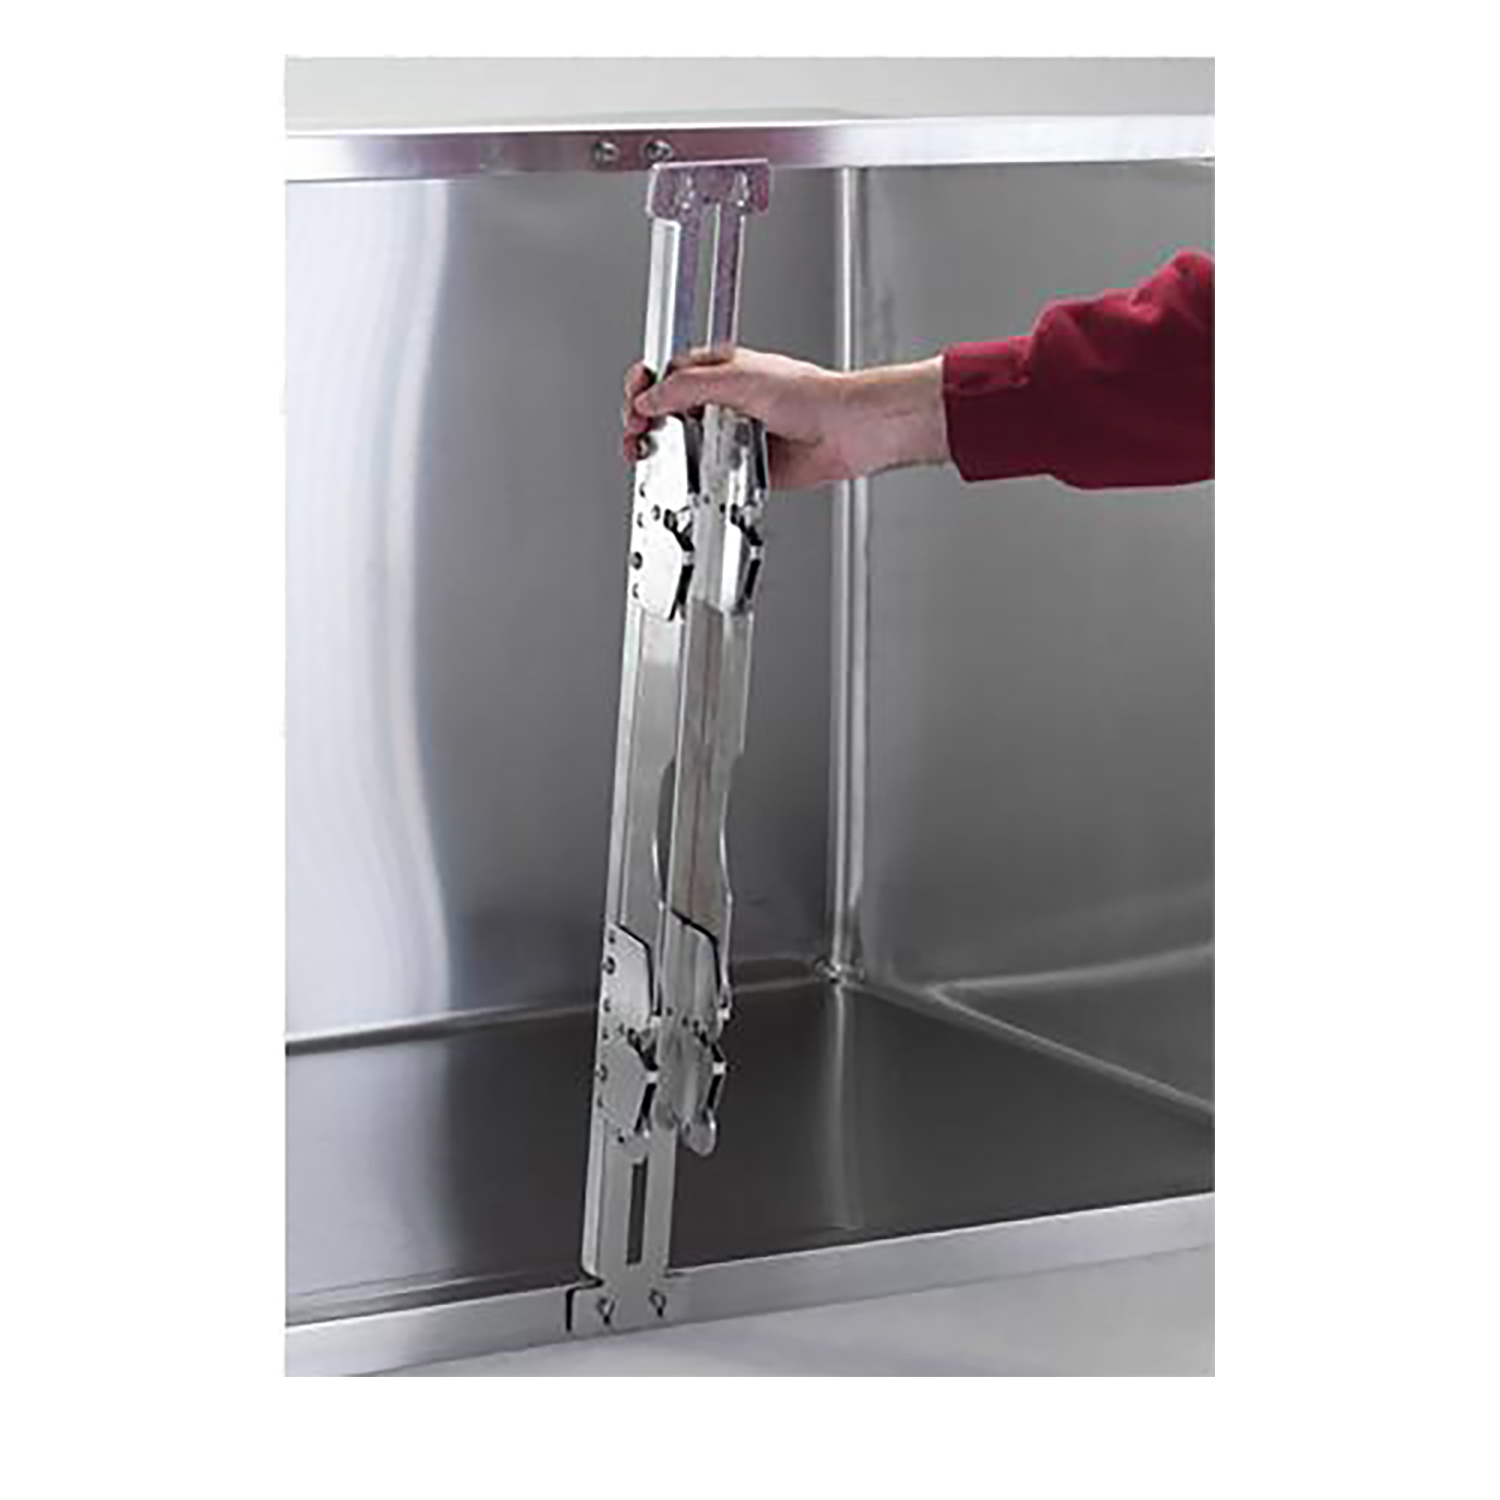 Removable Latch System for Double Door Cages